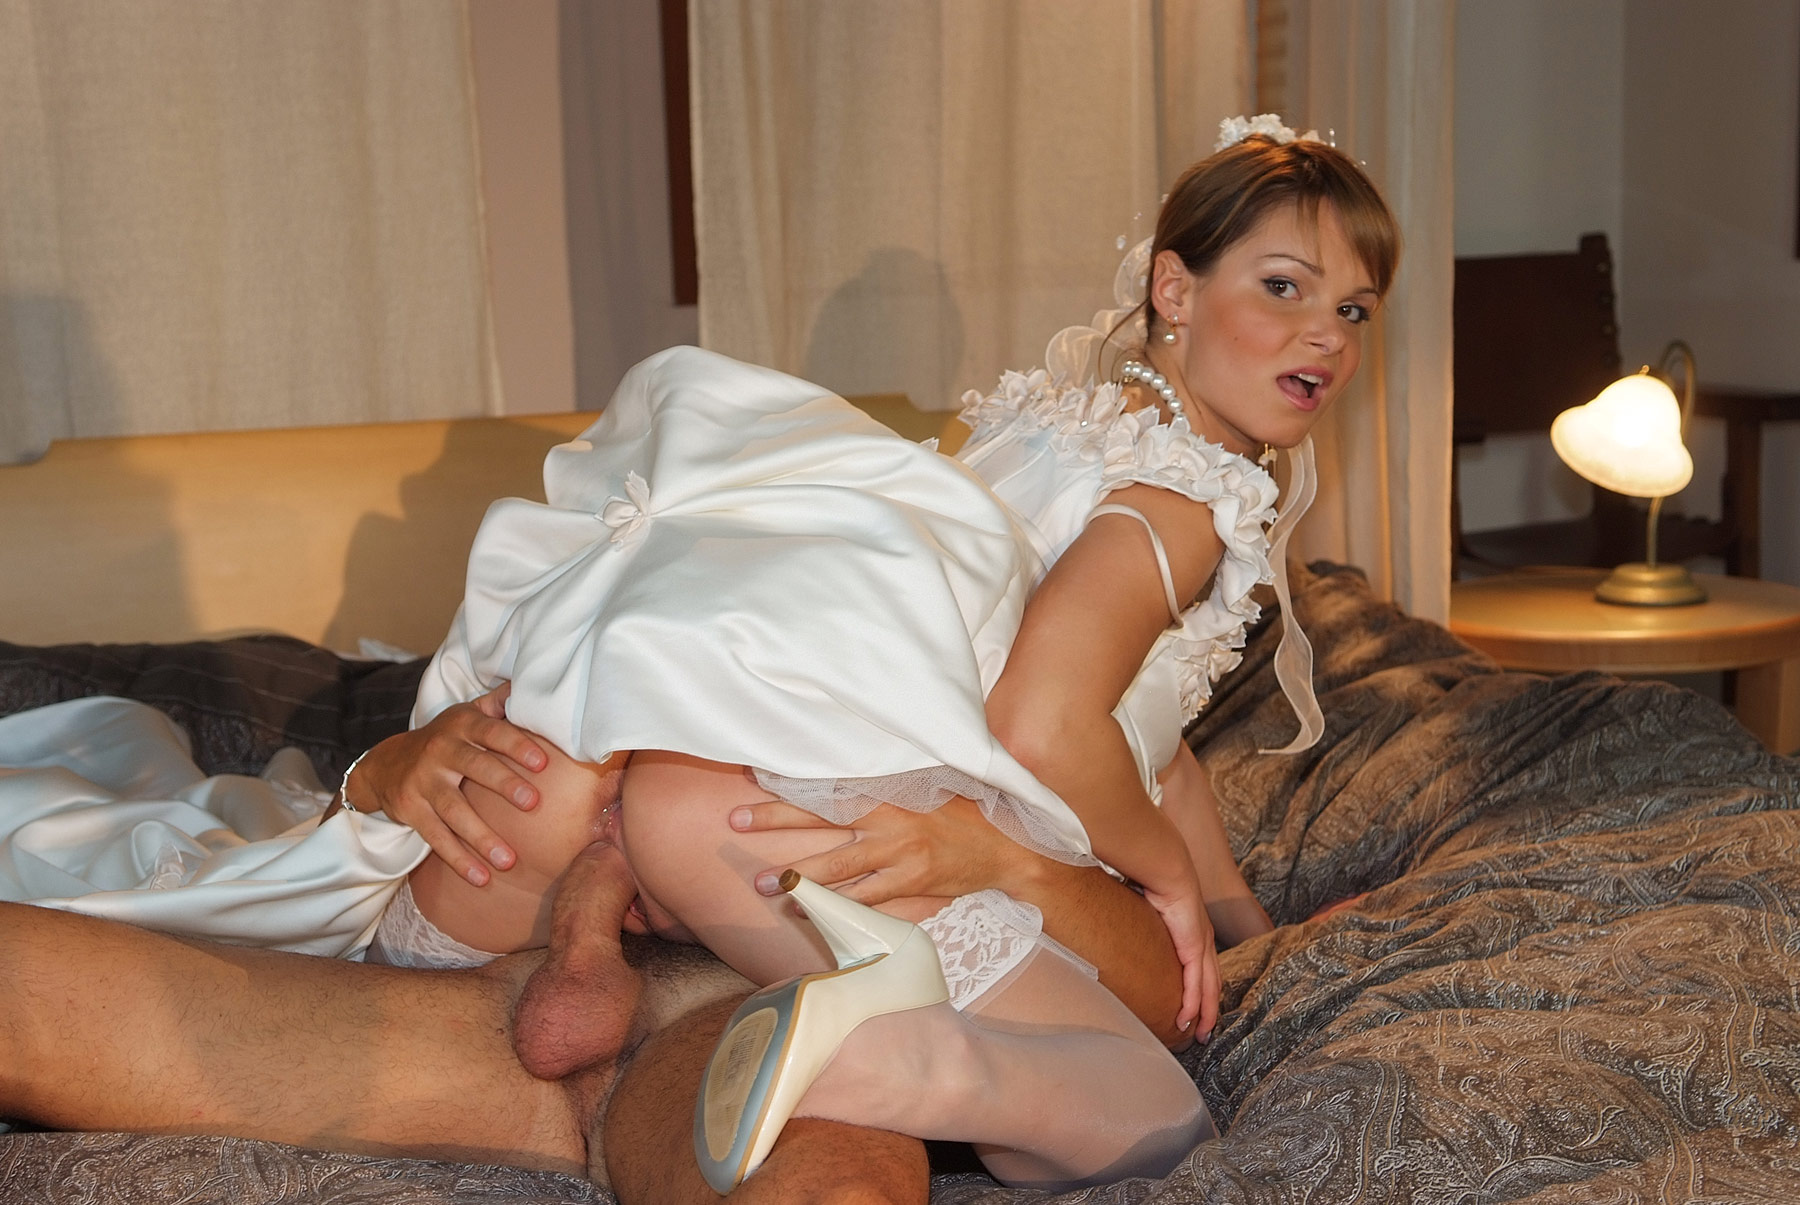 wedding-night-amatuer-sex-pics-russian-brunettes